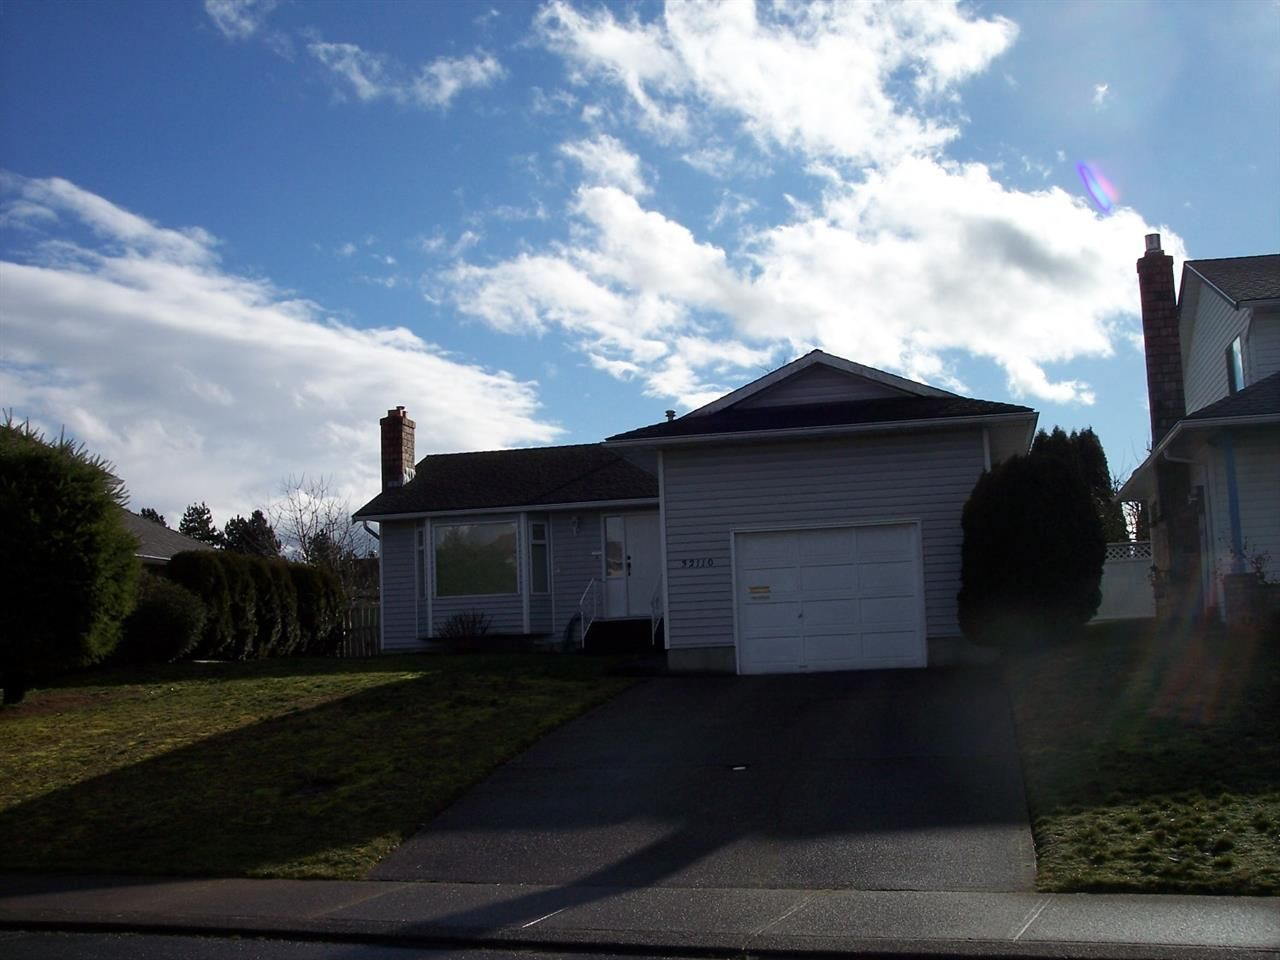 """Main Photo: 32110 ASHCROFT Drive in Abbotsford: Abbotsford West House for sale in """"Fairfield Estates"""" : MLS®# R2034956"""